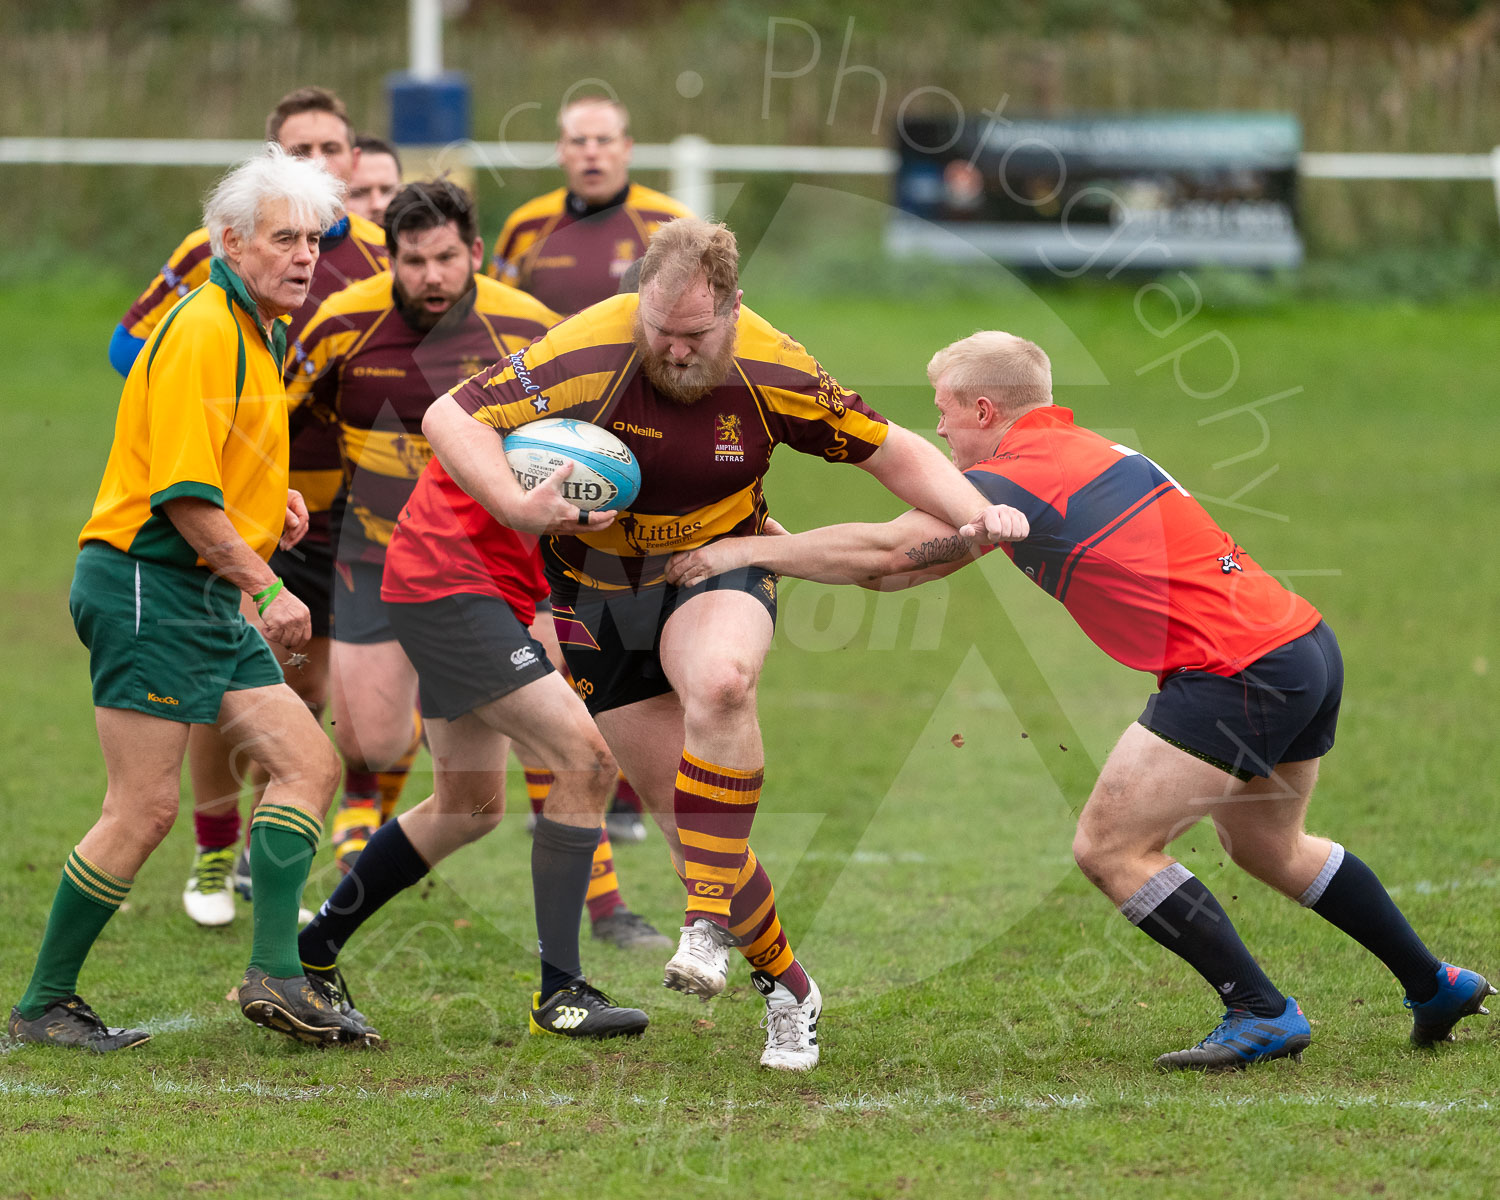 20181027 Amp Extras vs St Neots 2nd XV #2231